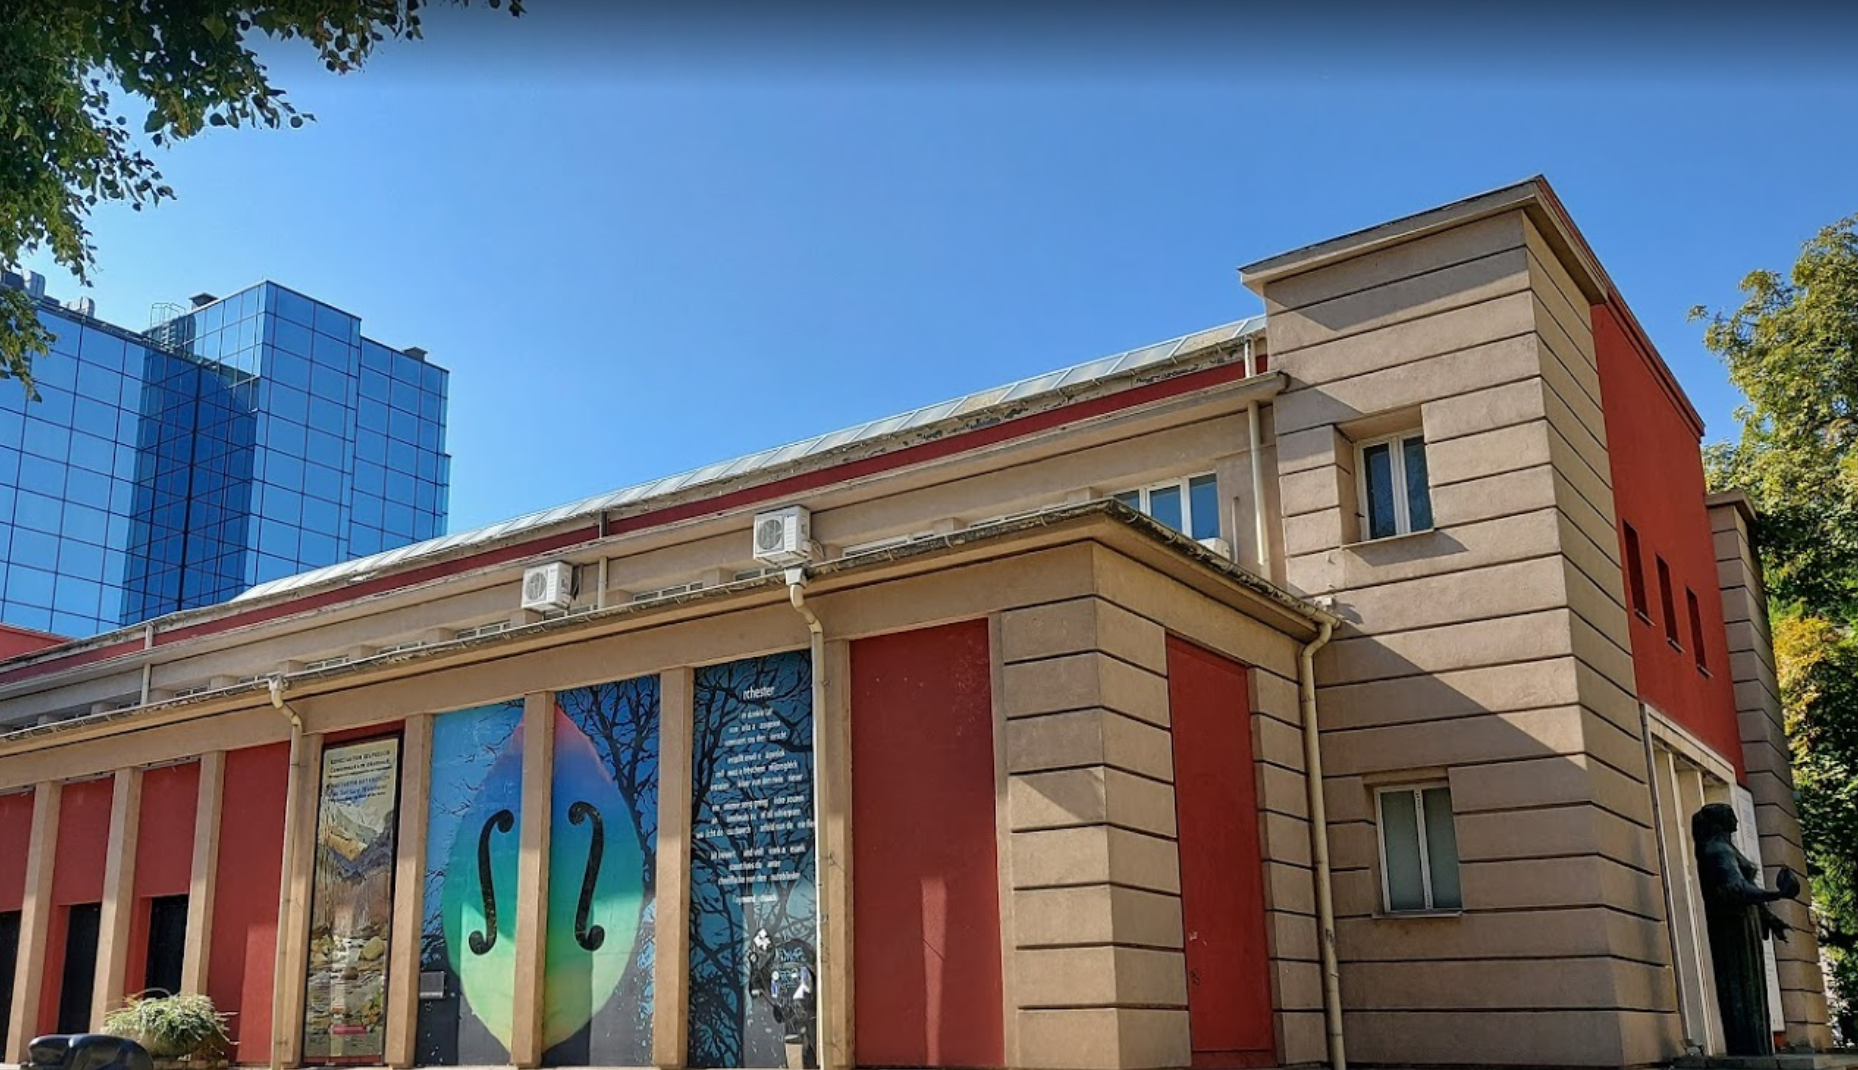 The Sofia City Art Gallery with a Longterm Strategy for Purchasing Works